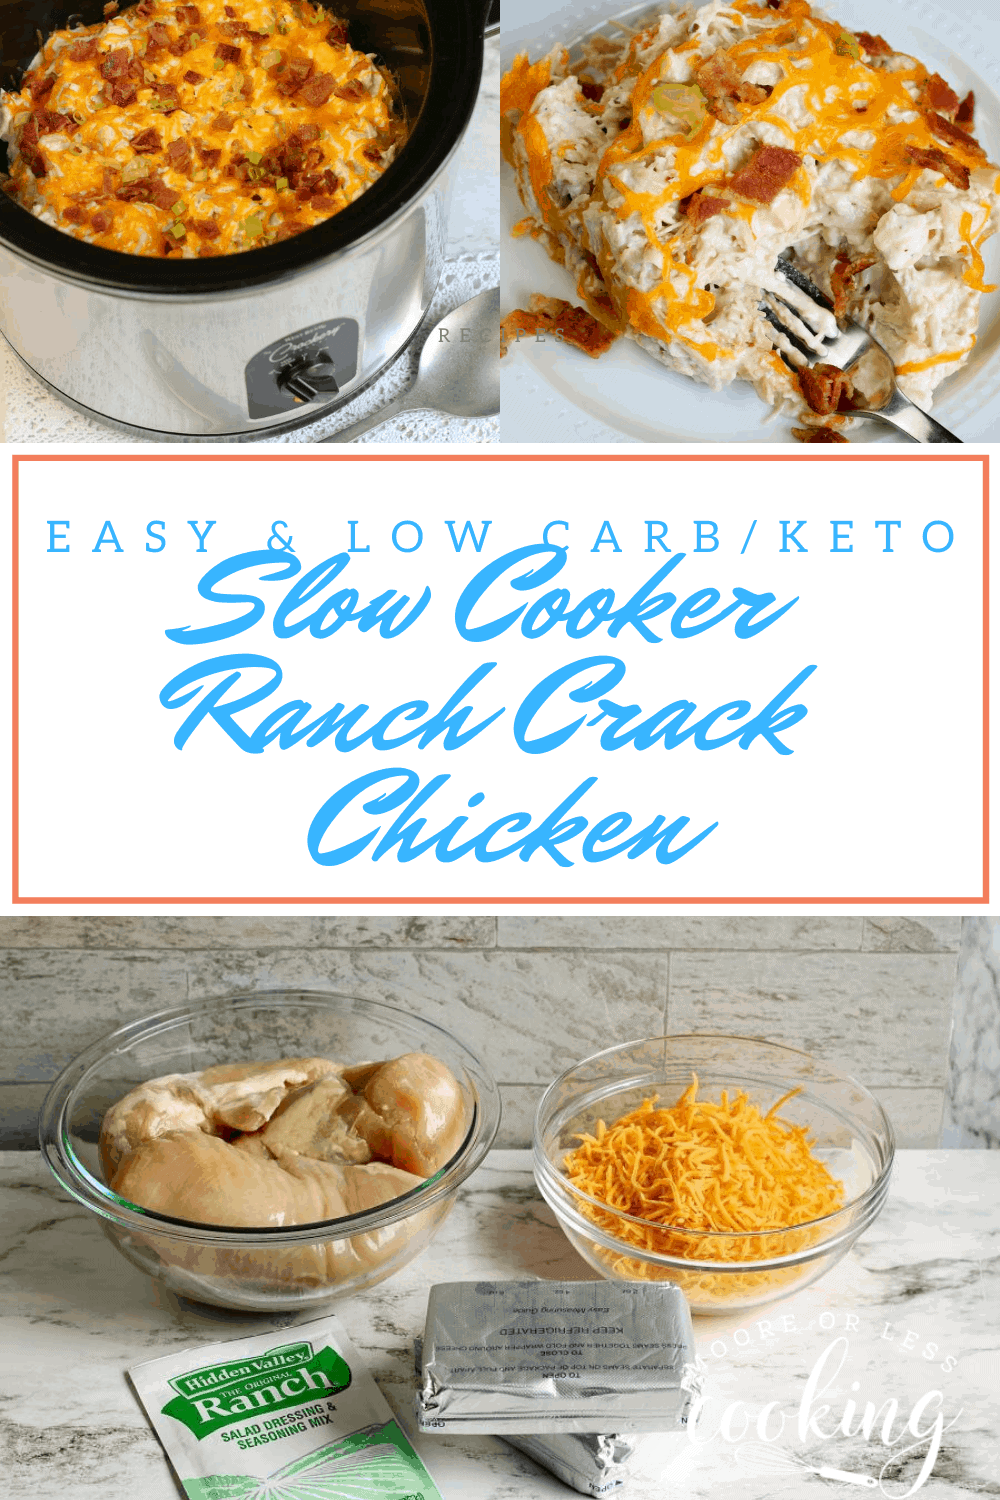 Slow Cooker Ranch Crack Chicken is incredibly delicious filled with favorites like bacon, chicken, and gooey cheese! via @Mooreorlesscook